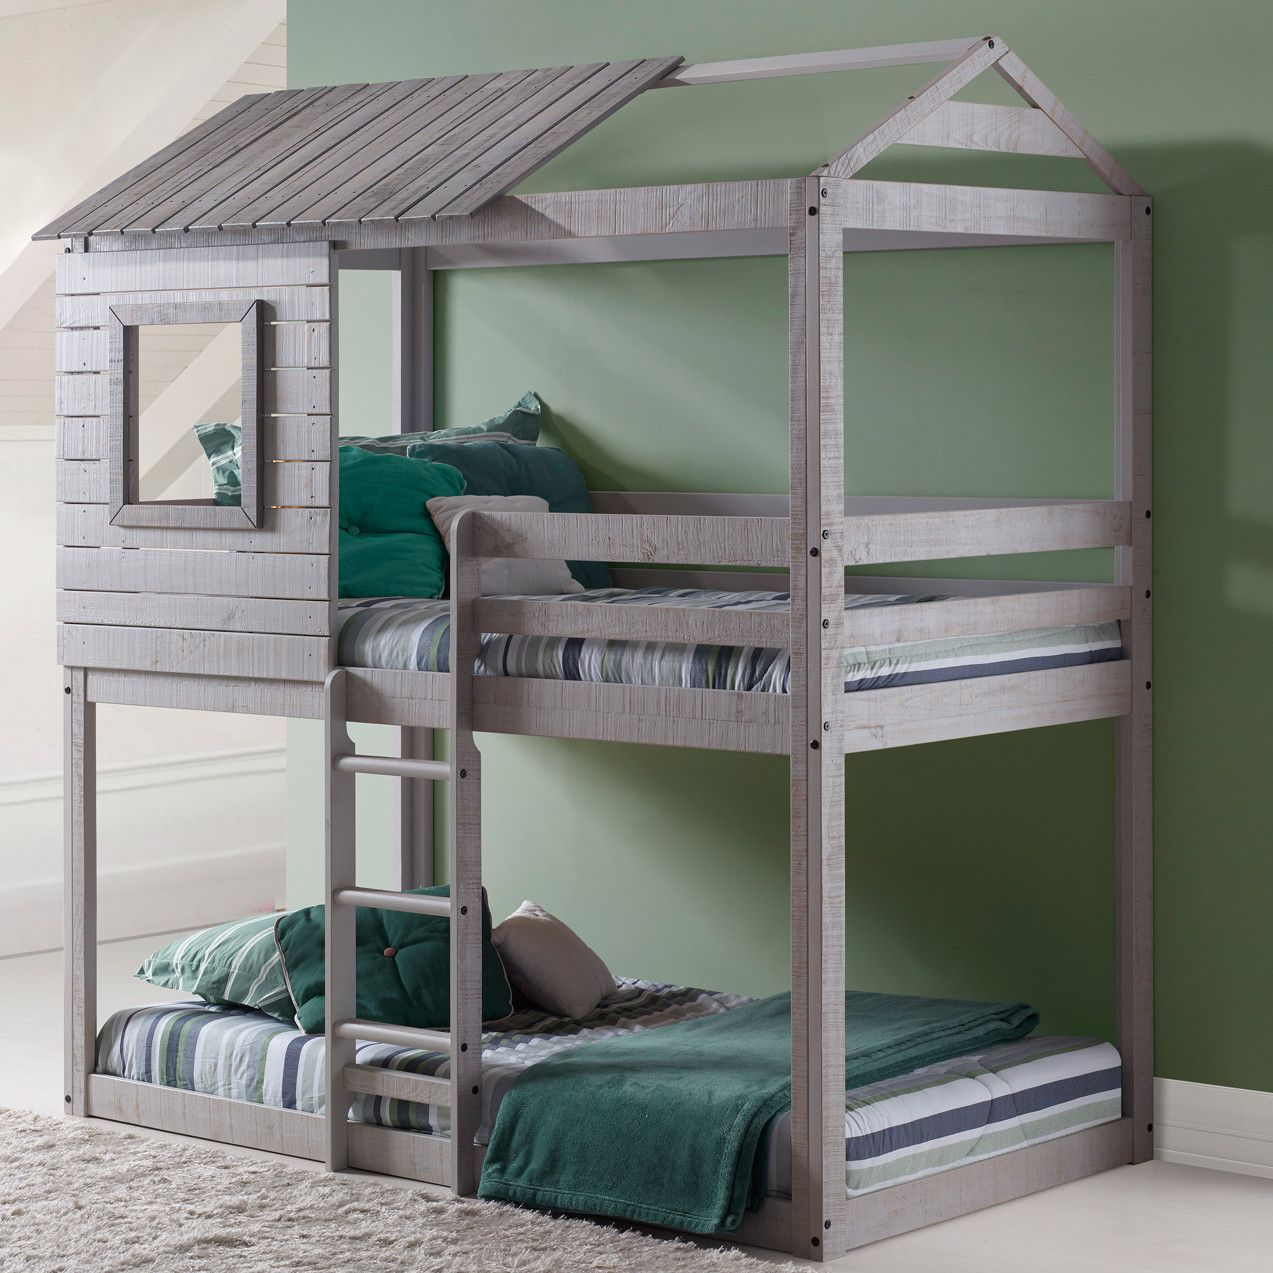 Loft bed ideas  Donco Kids Twin Bunk Bed  Ideas for the House  Pinterest  Bunk